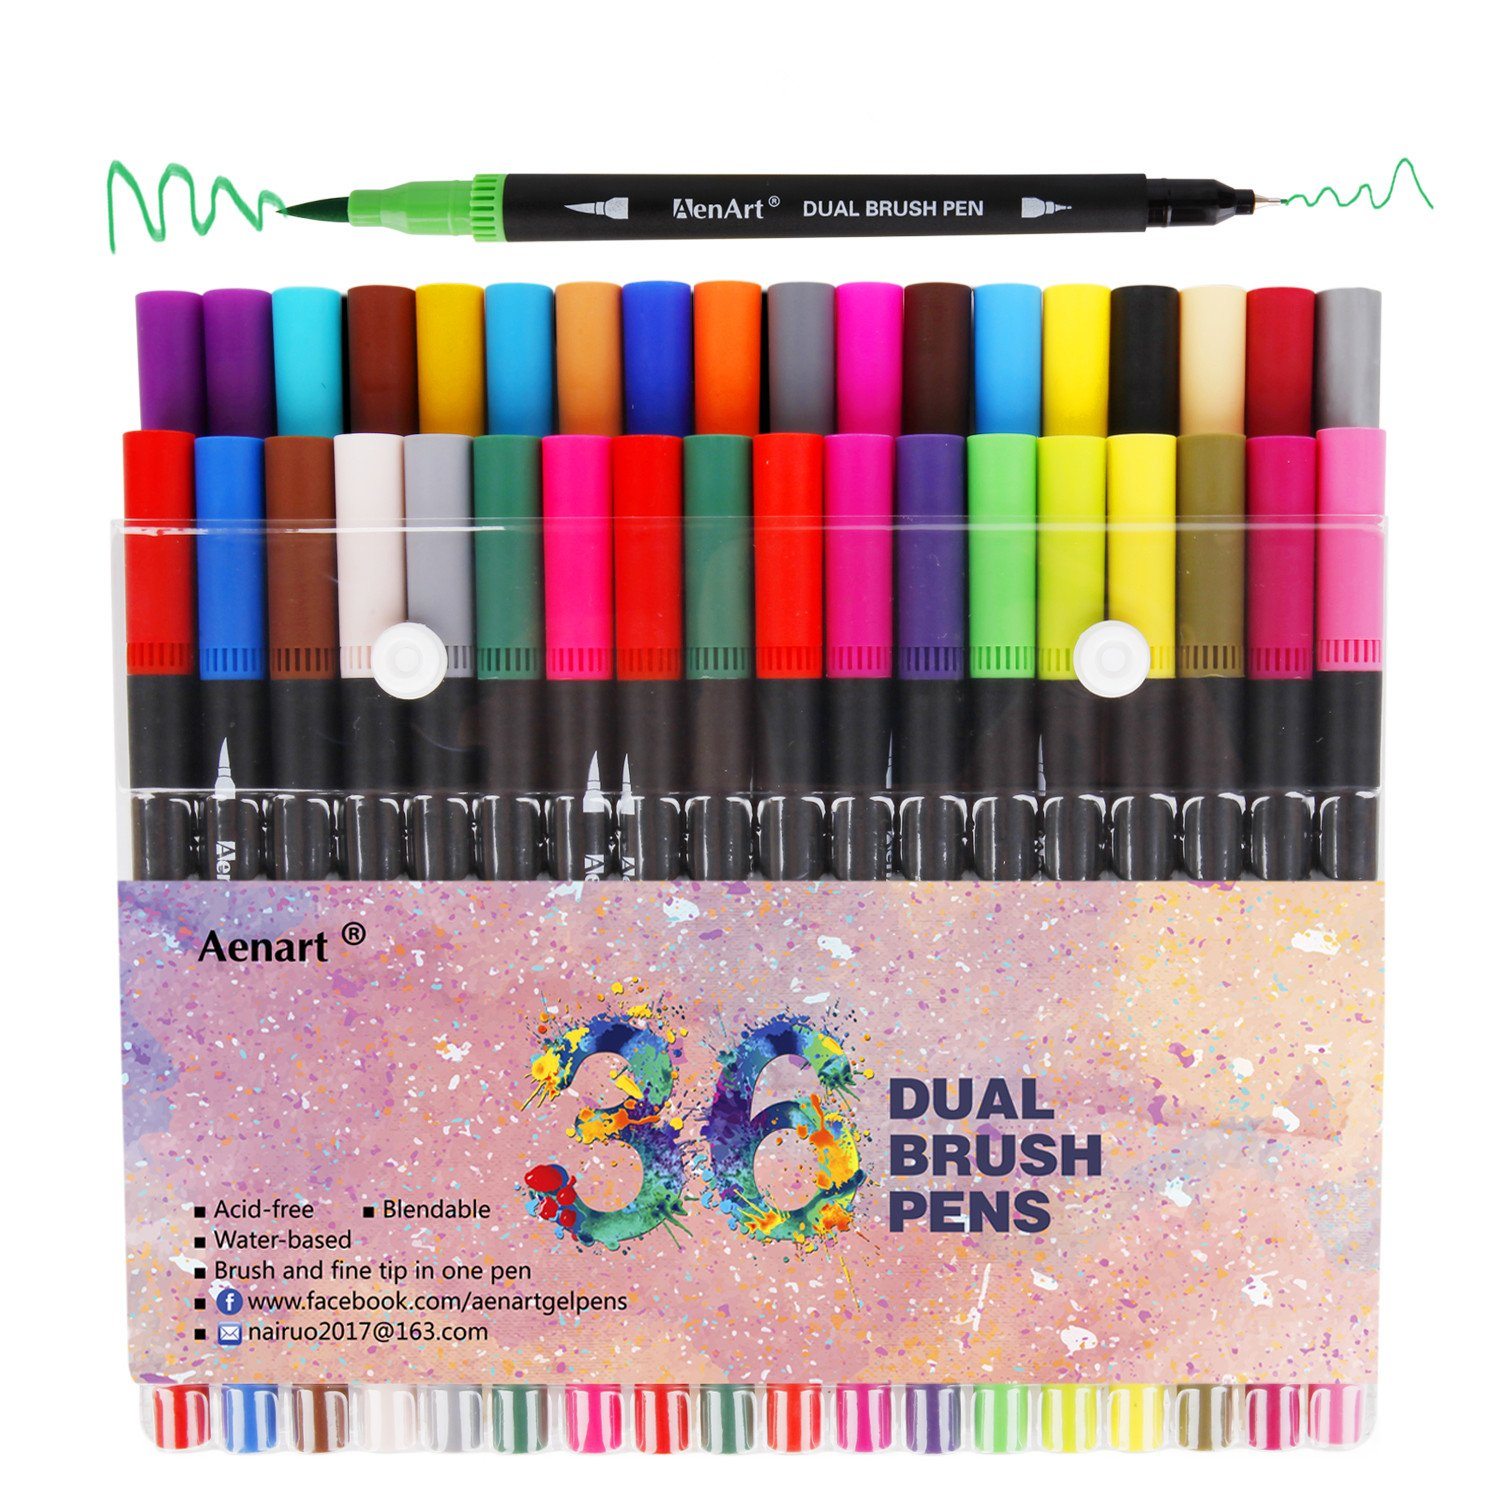 Brush Marker Dual Tip Pens - 36 Colors Art Markers for Coloring Books - Fine Tip Pen and Brush Pen Great for Bullet Journal, Lettering and Calligraphy Mdk-DP